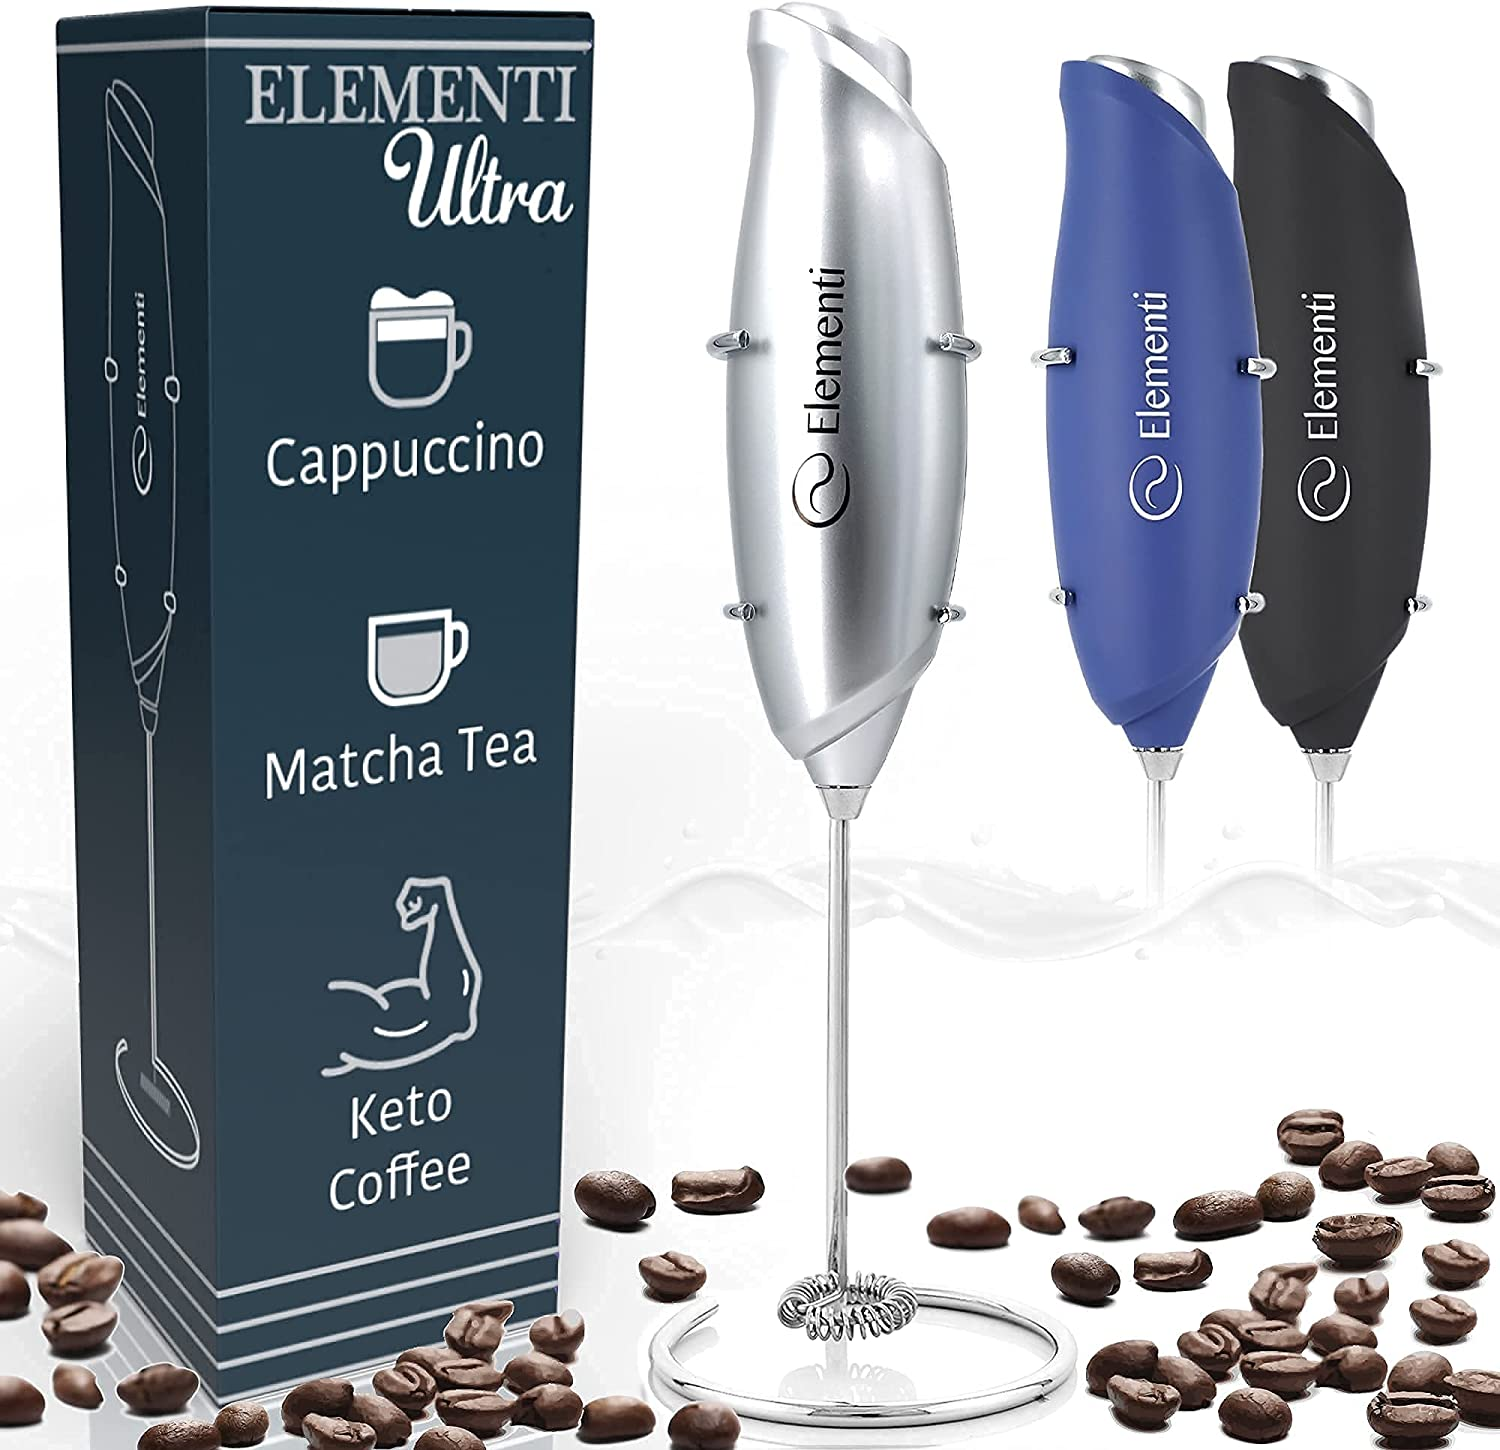 Elementi Milk Frother Handheld Electric Matcha Whisk (Ultra Silver), Handheld Milk Frother Electric Stirrer, Coffee Frother Mini Blender Hand Frother Drink Mixer Frappe Maker Latte Milk Foamer